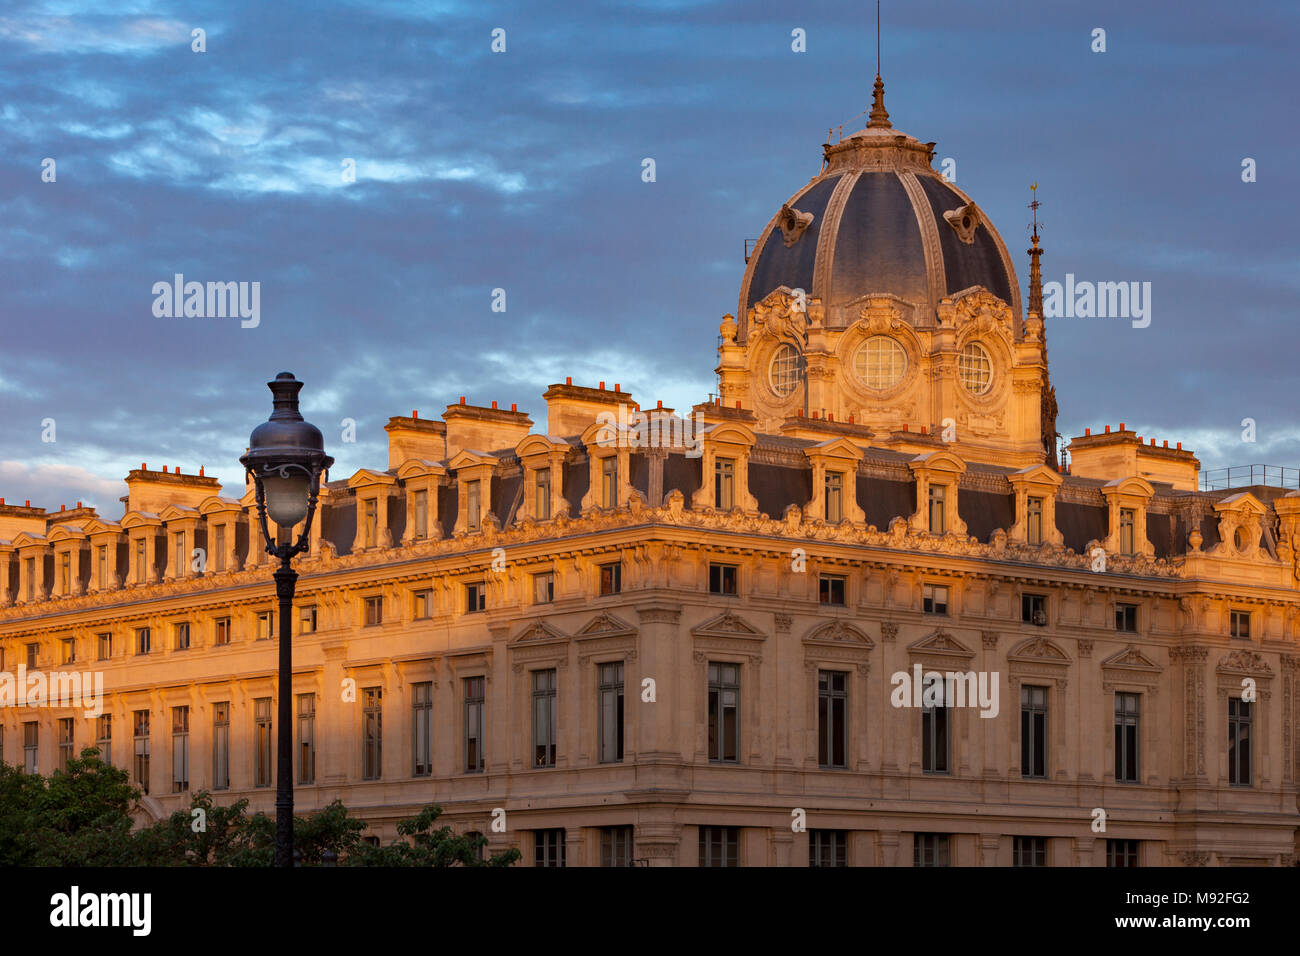 Ile de re stock photos ile de re stock images alamy - Greffe du tribunal de commerce salon de provence ...